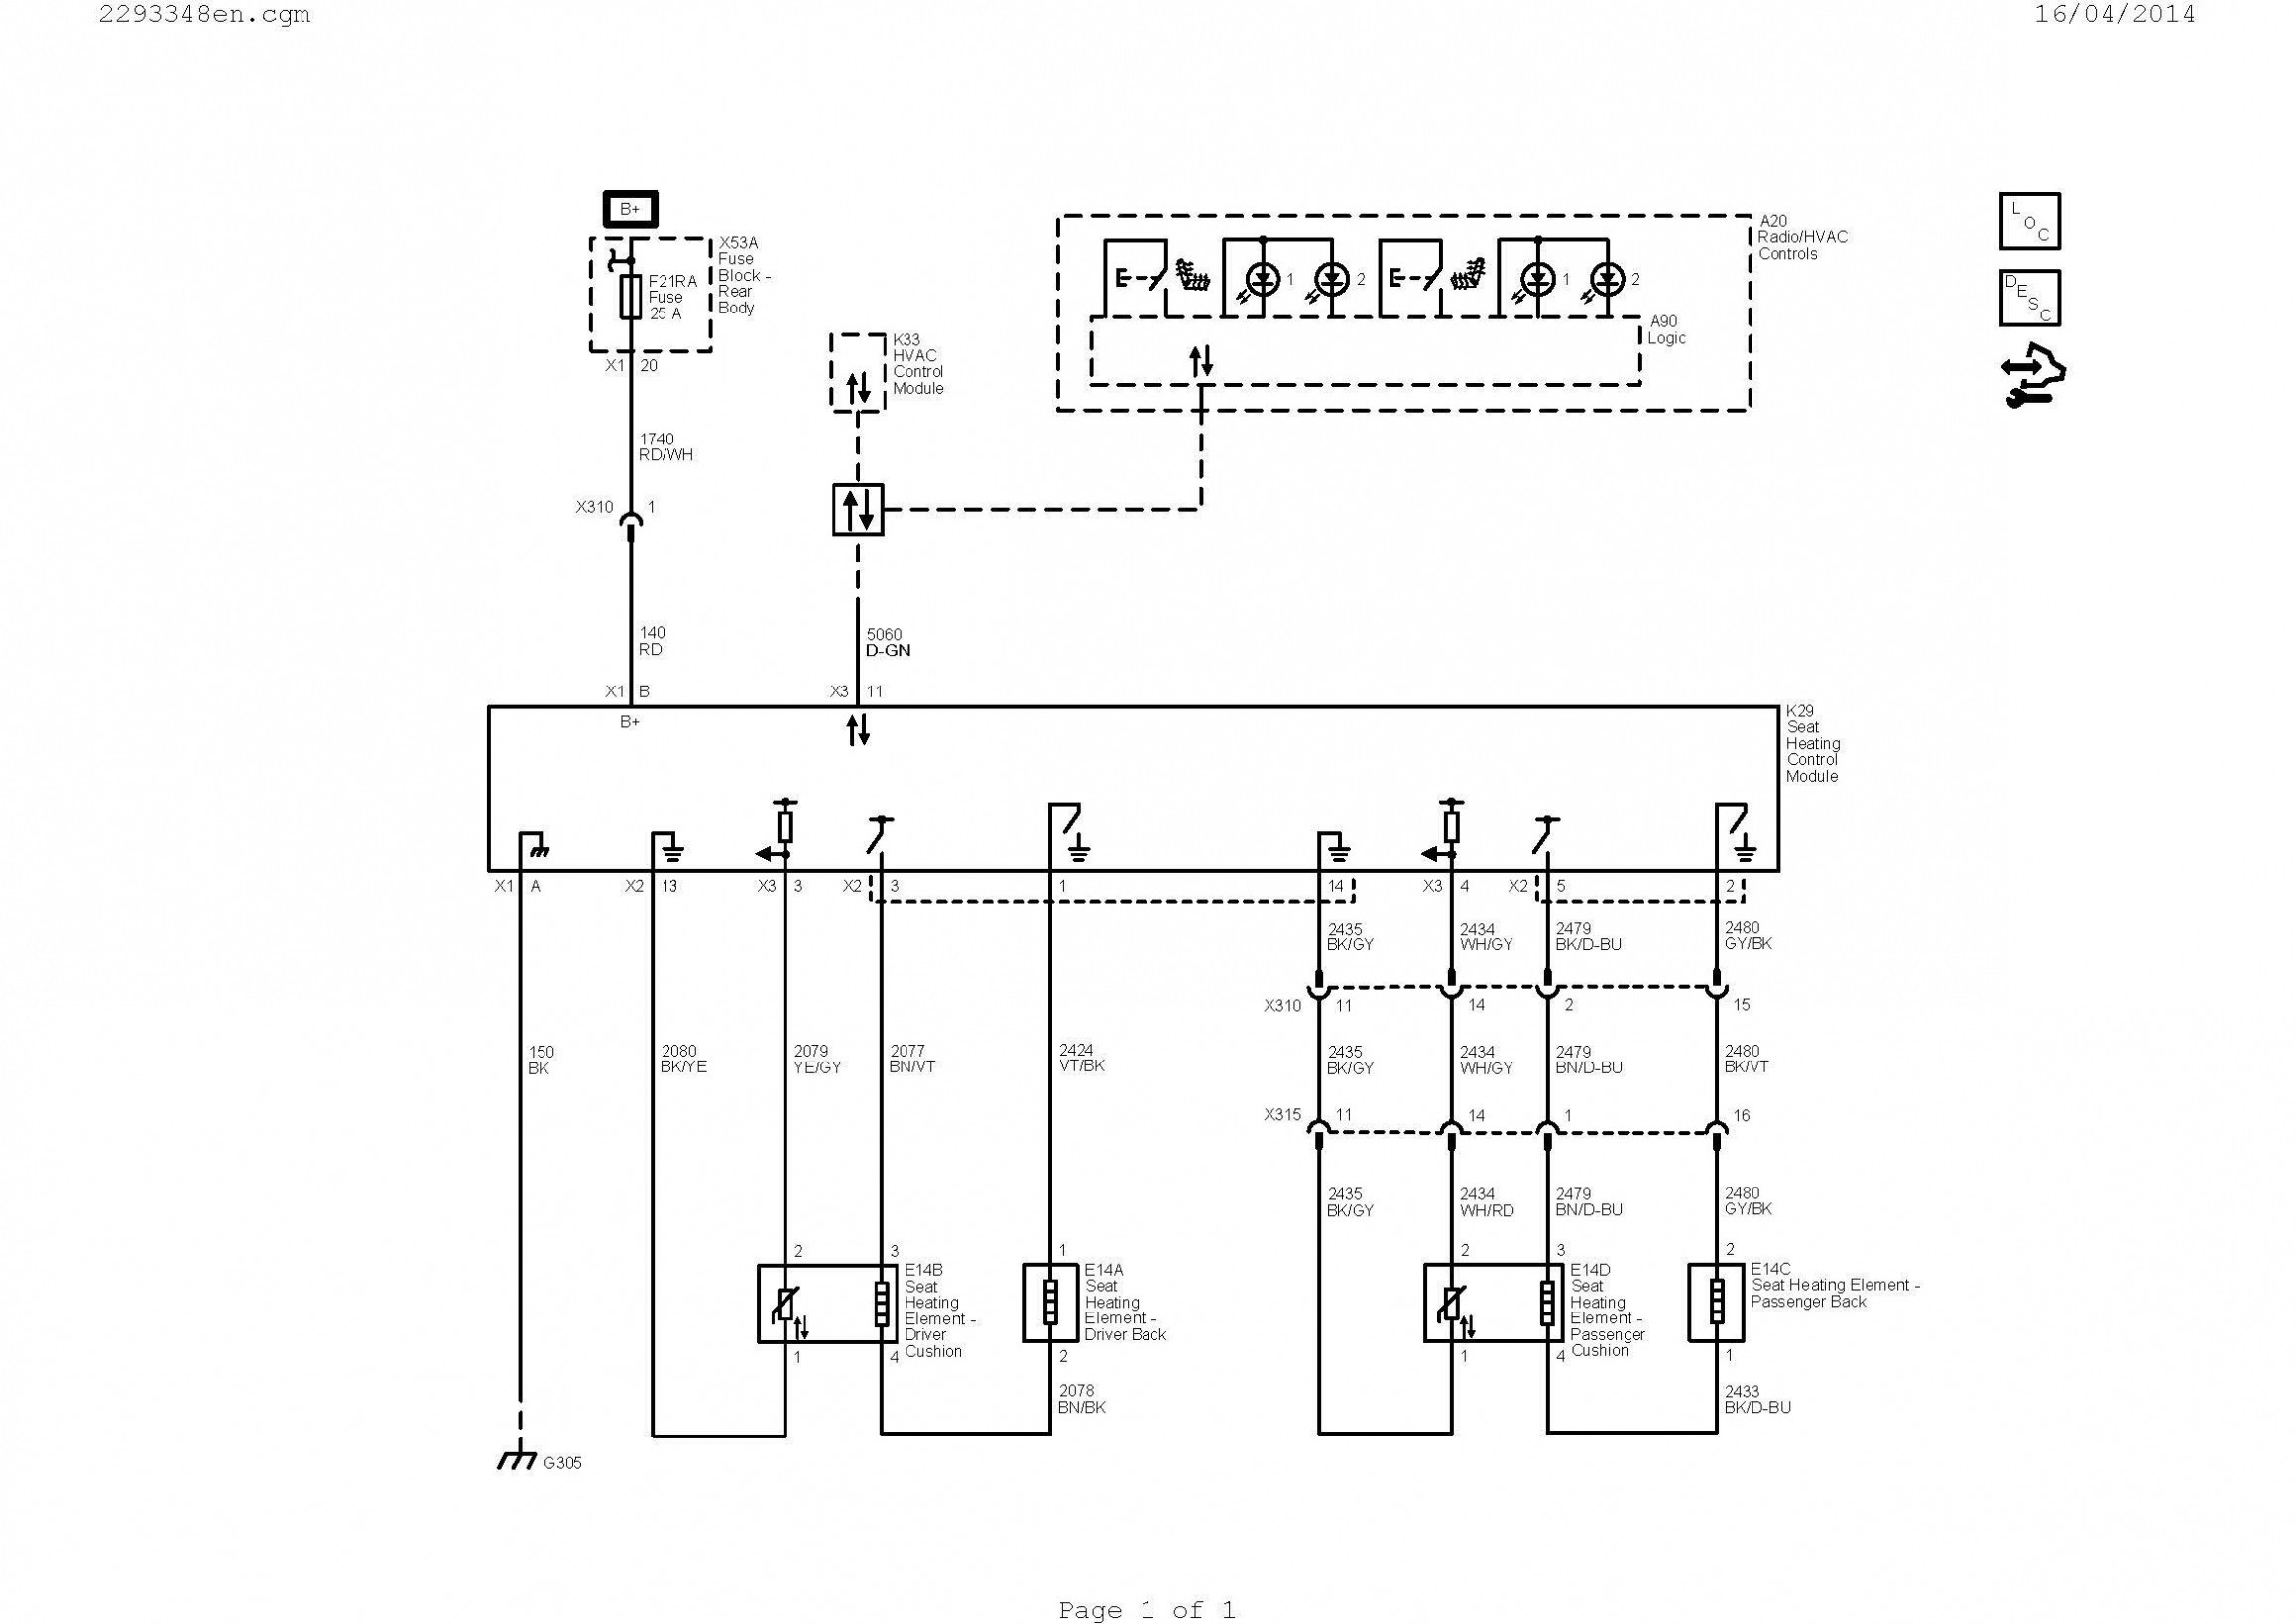 Automobile Brake System Diagram Chevy Ignition System Wiring Diagram Save top Car Brake Diagram Rear Of Automobile Brake System Diagram